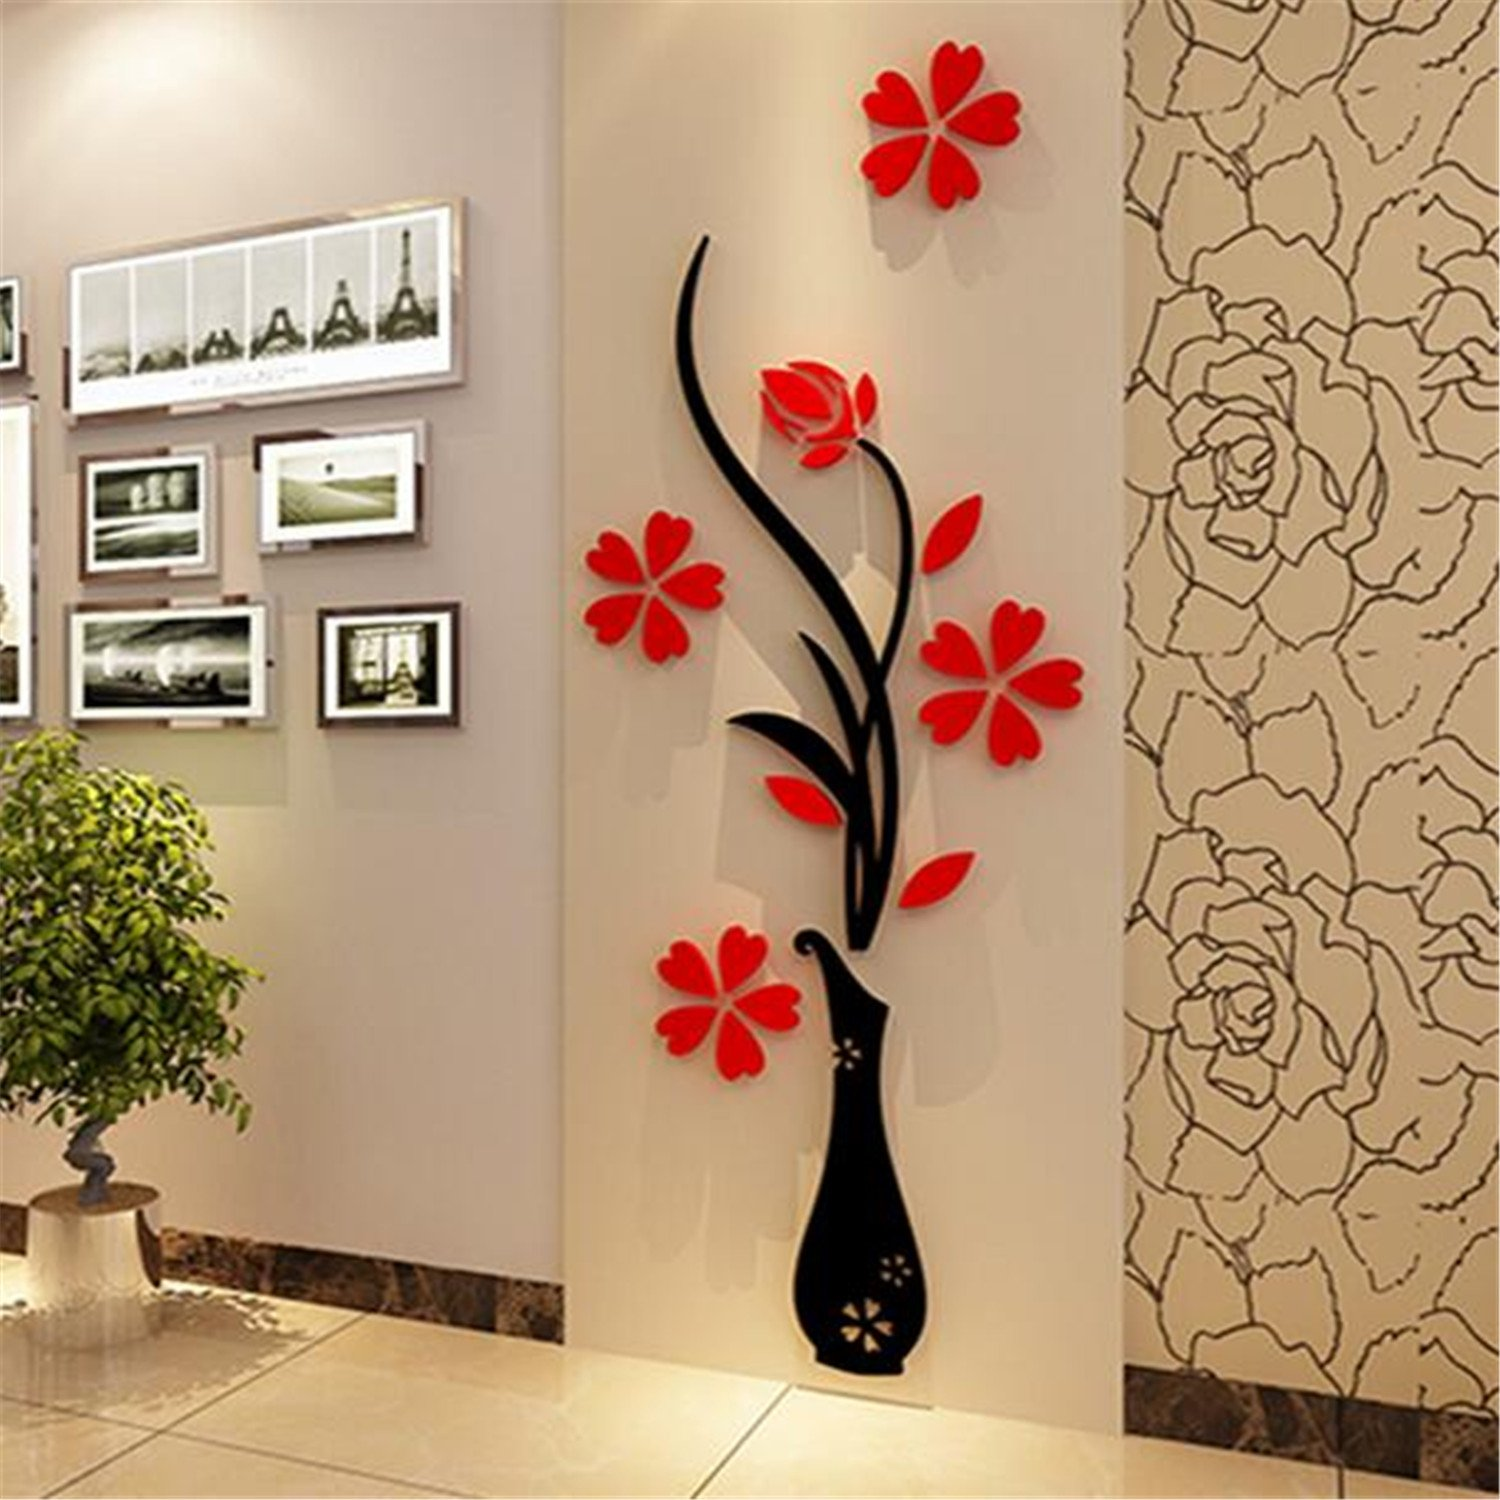 Delicieux Amazon.com: Home Accessories 3d Wall Decoration Wall Sticker Flower Wall  Murals Removable Wall Decals (70.9*28Inches, A): Home U0026 Kitchen